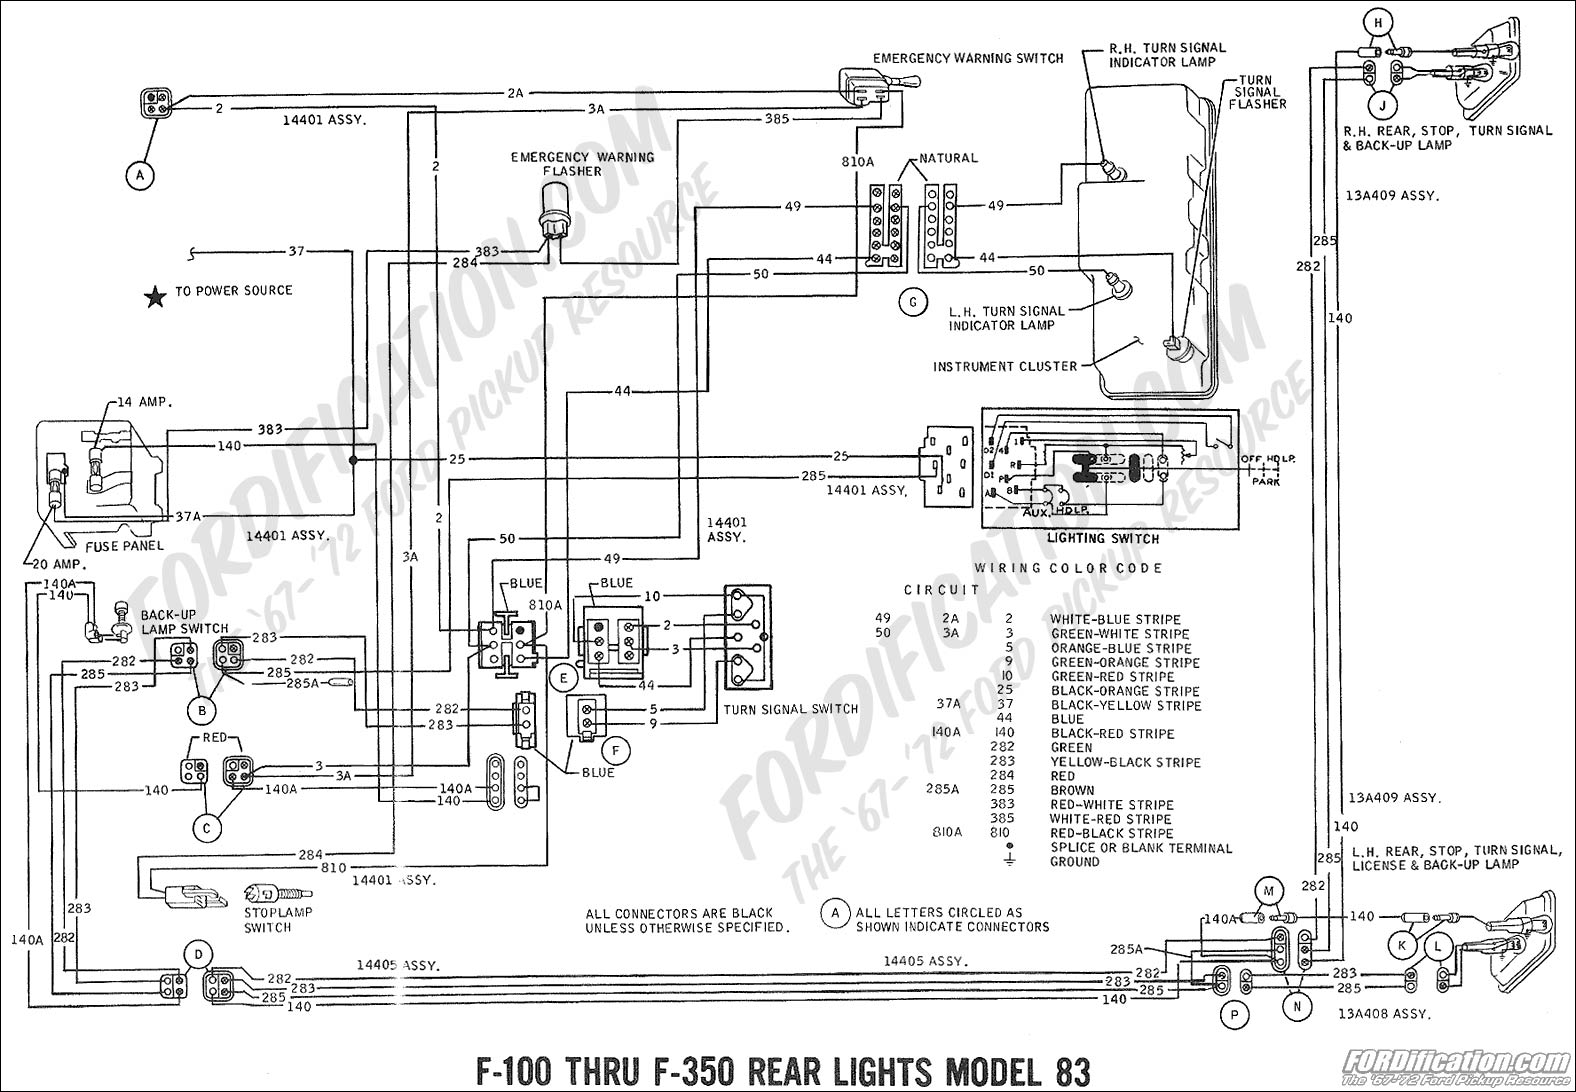 Ford F250 Turn Signal Wiring Diagram | Wiring Diagram  Ford Expedition Turn Signal Wiring Diagram on